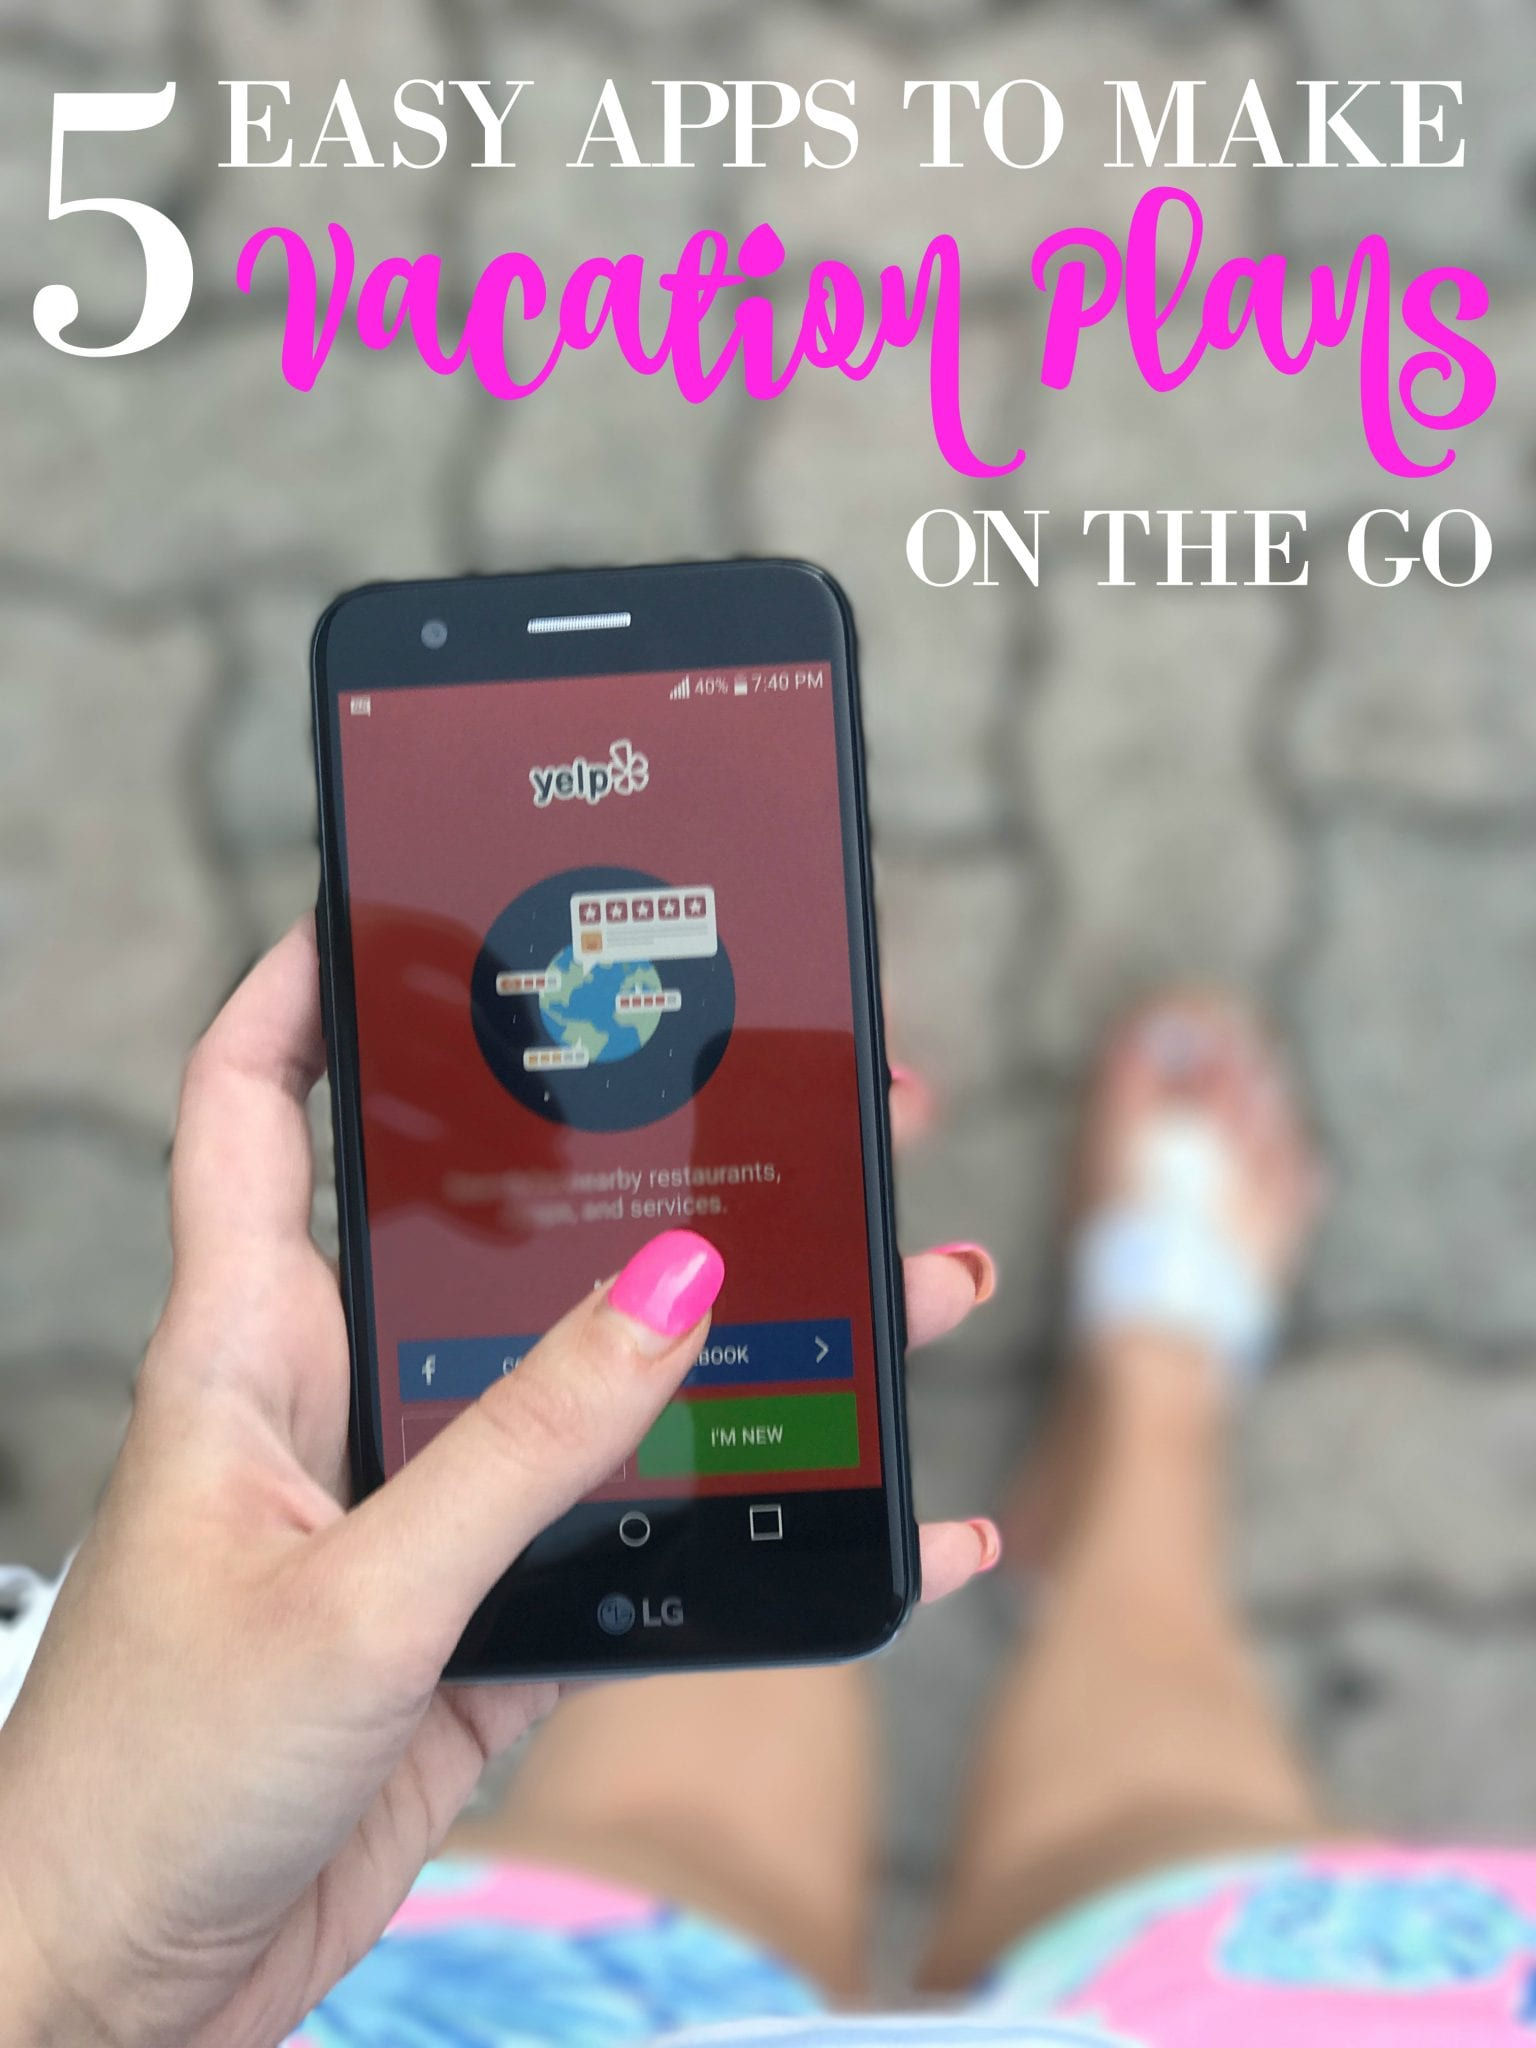 5 Easy Apps to Make Vacation Plans on the Go Walmart Family Mobile